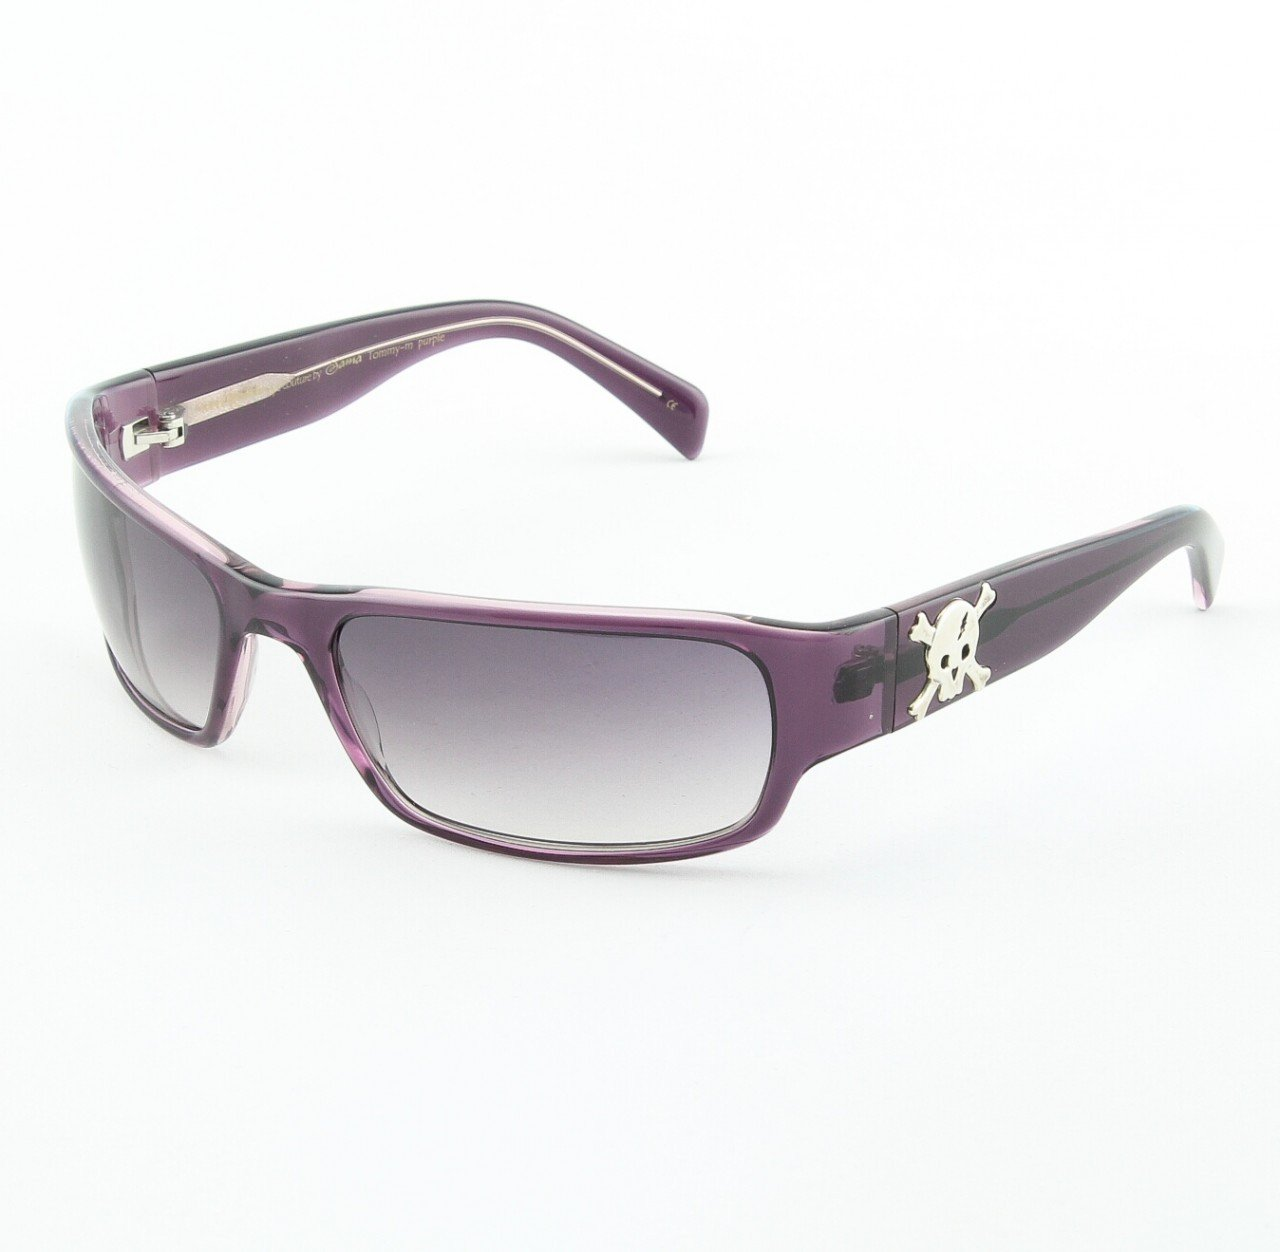 Loree Rodkin Tommy-M Sunglasses by Sama Col. Purple with Gray Gradient Lenses and Sterling Silver